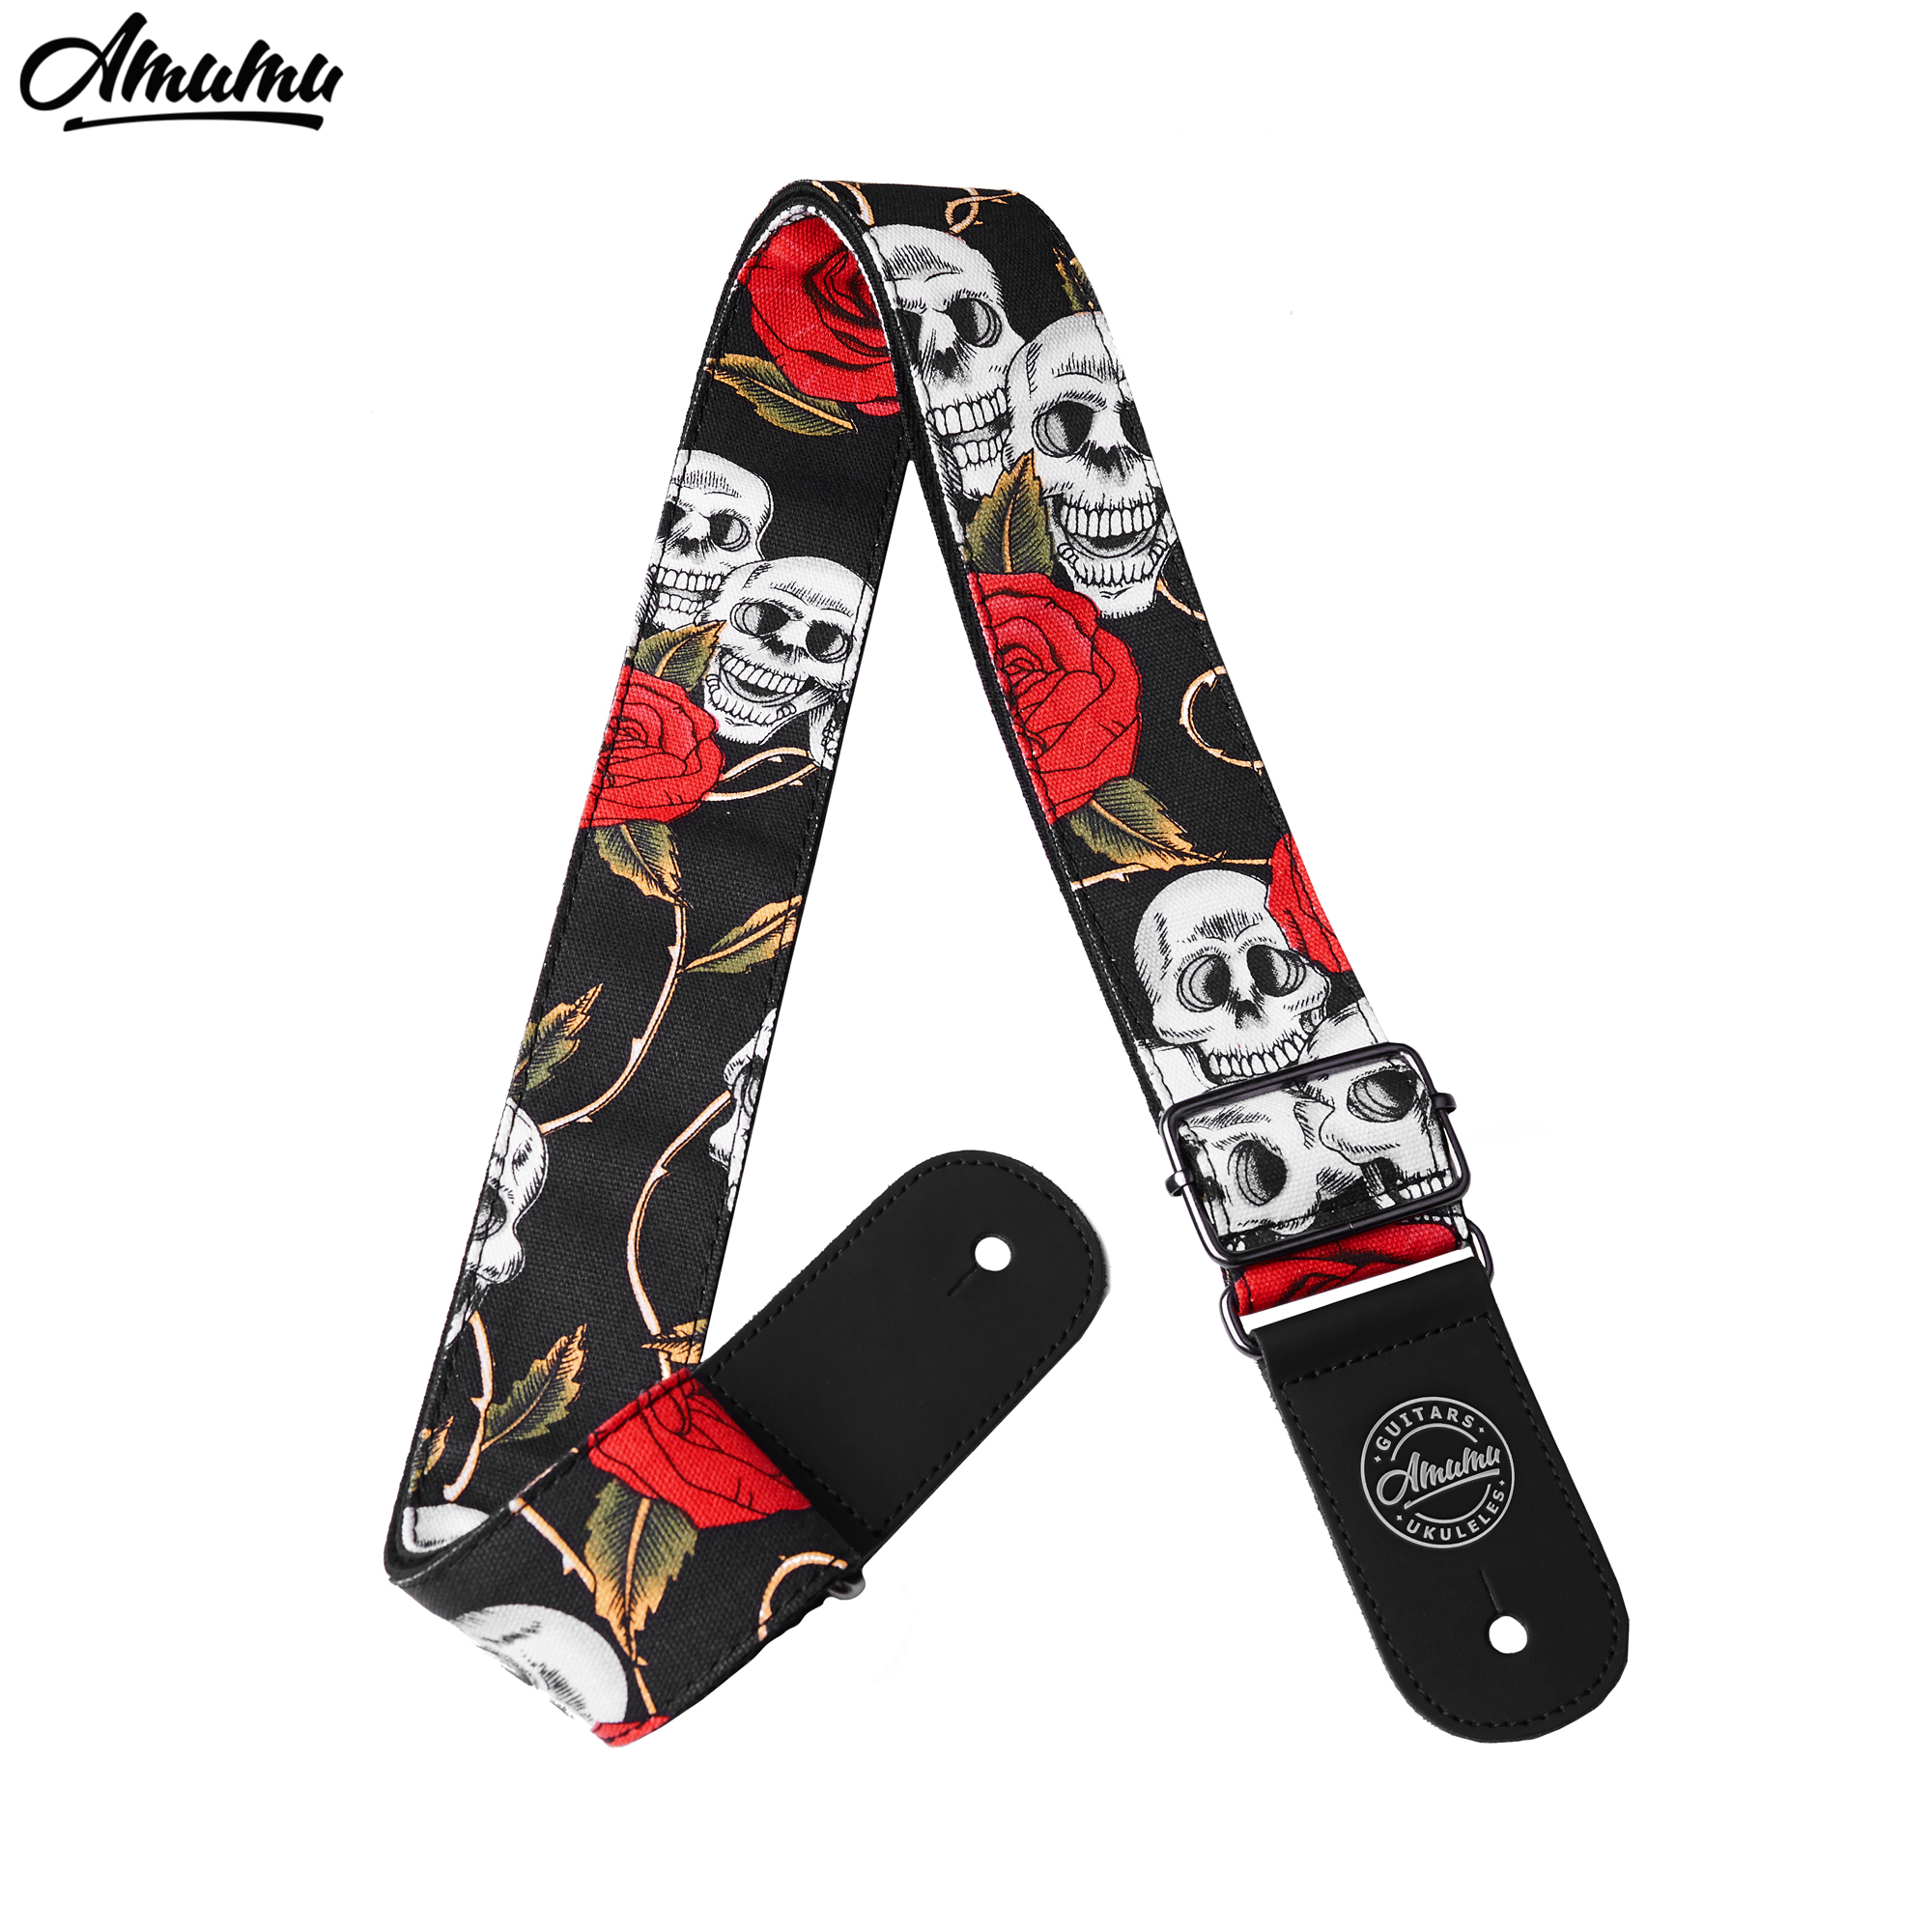 Skull and Rose Cotton Guitar Straps for Acoustic Electric Guitar 91-160cm Length with Leather End  5cm Width Amumu S625 two way regulating lever acoustic classical electric guitar neck truss rod adjustment core guitar parts